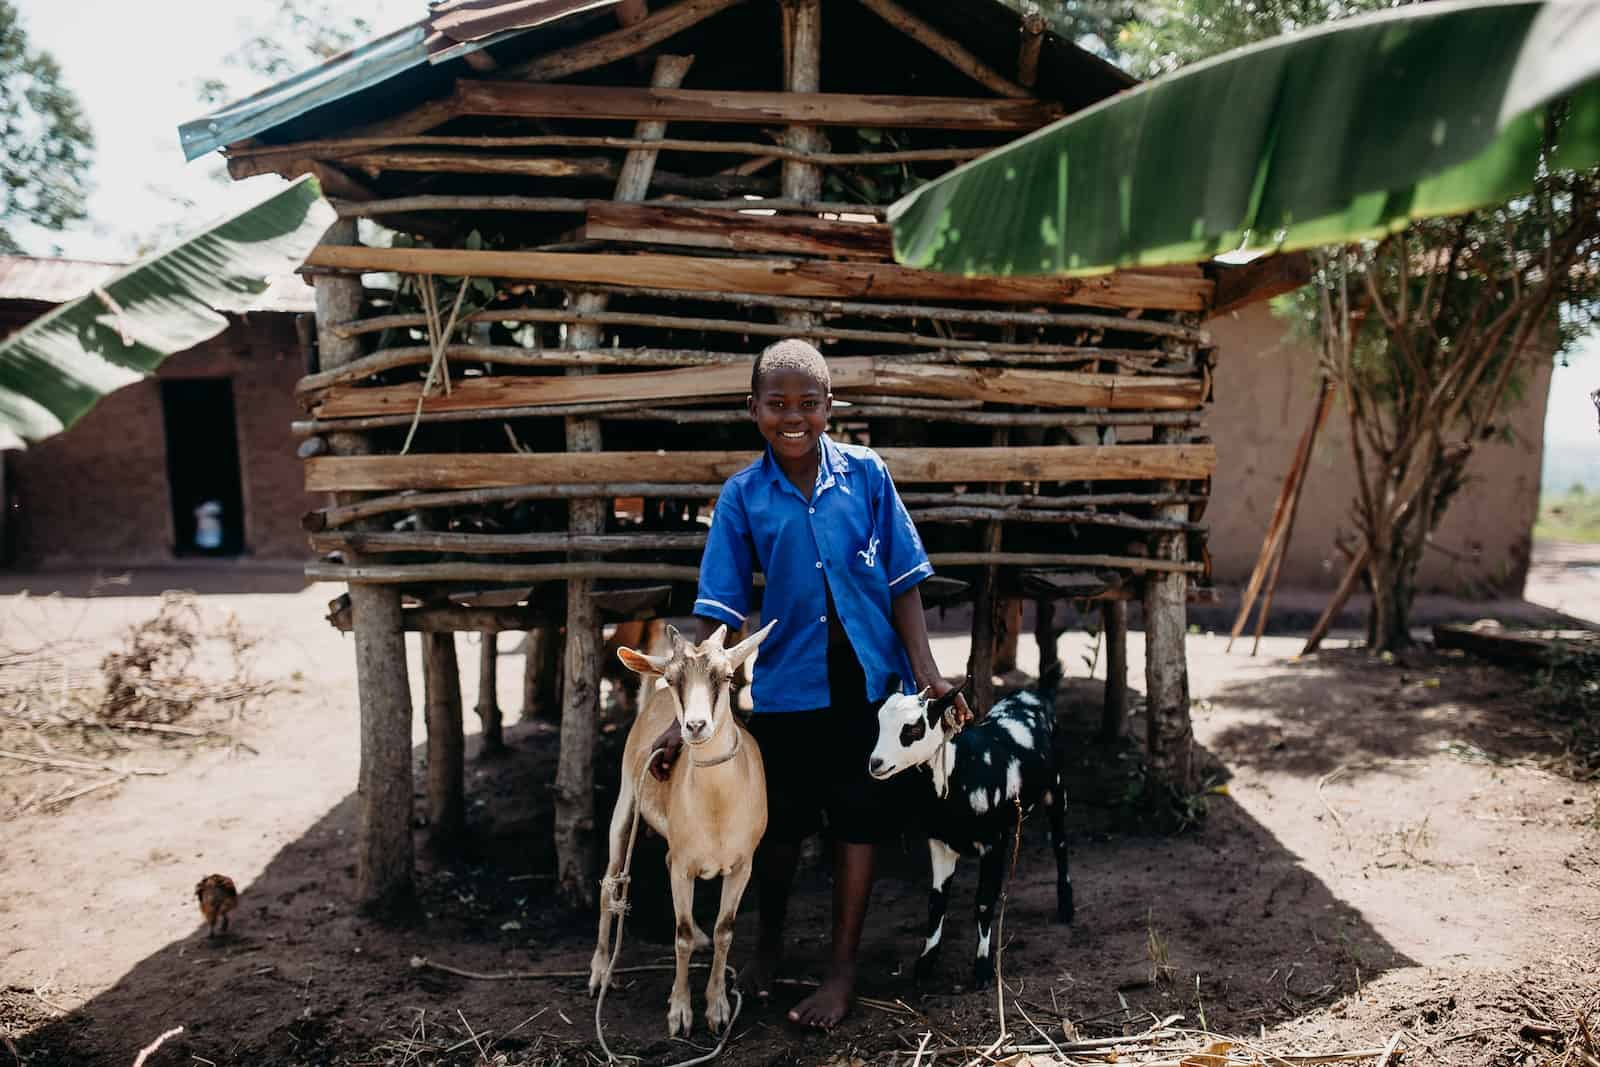 Give a goat: a girl stands outside a wood animal pen with two goats.